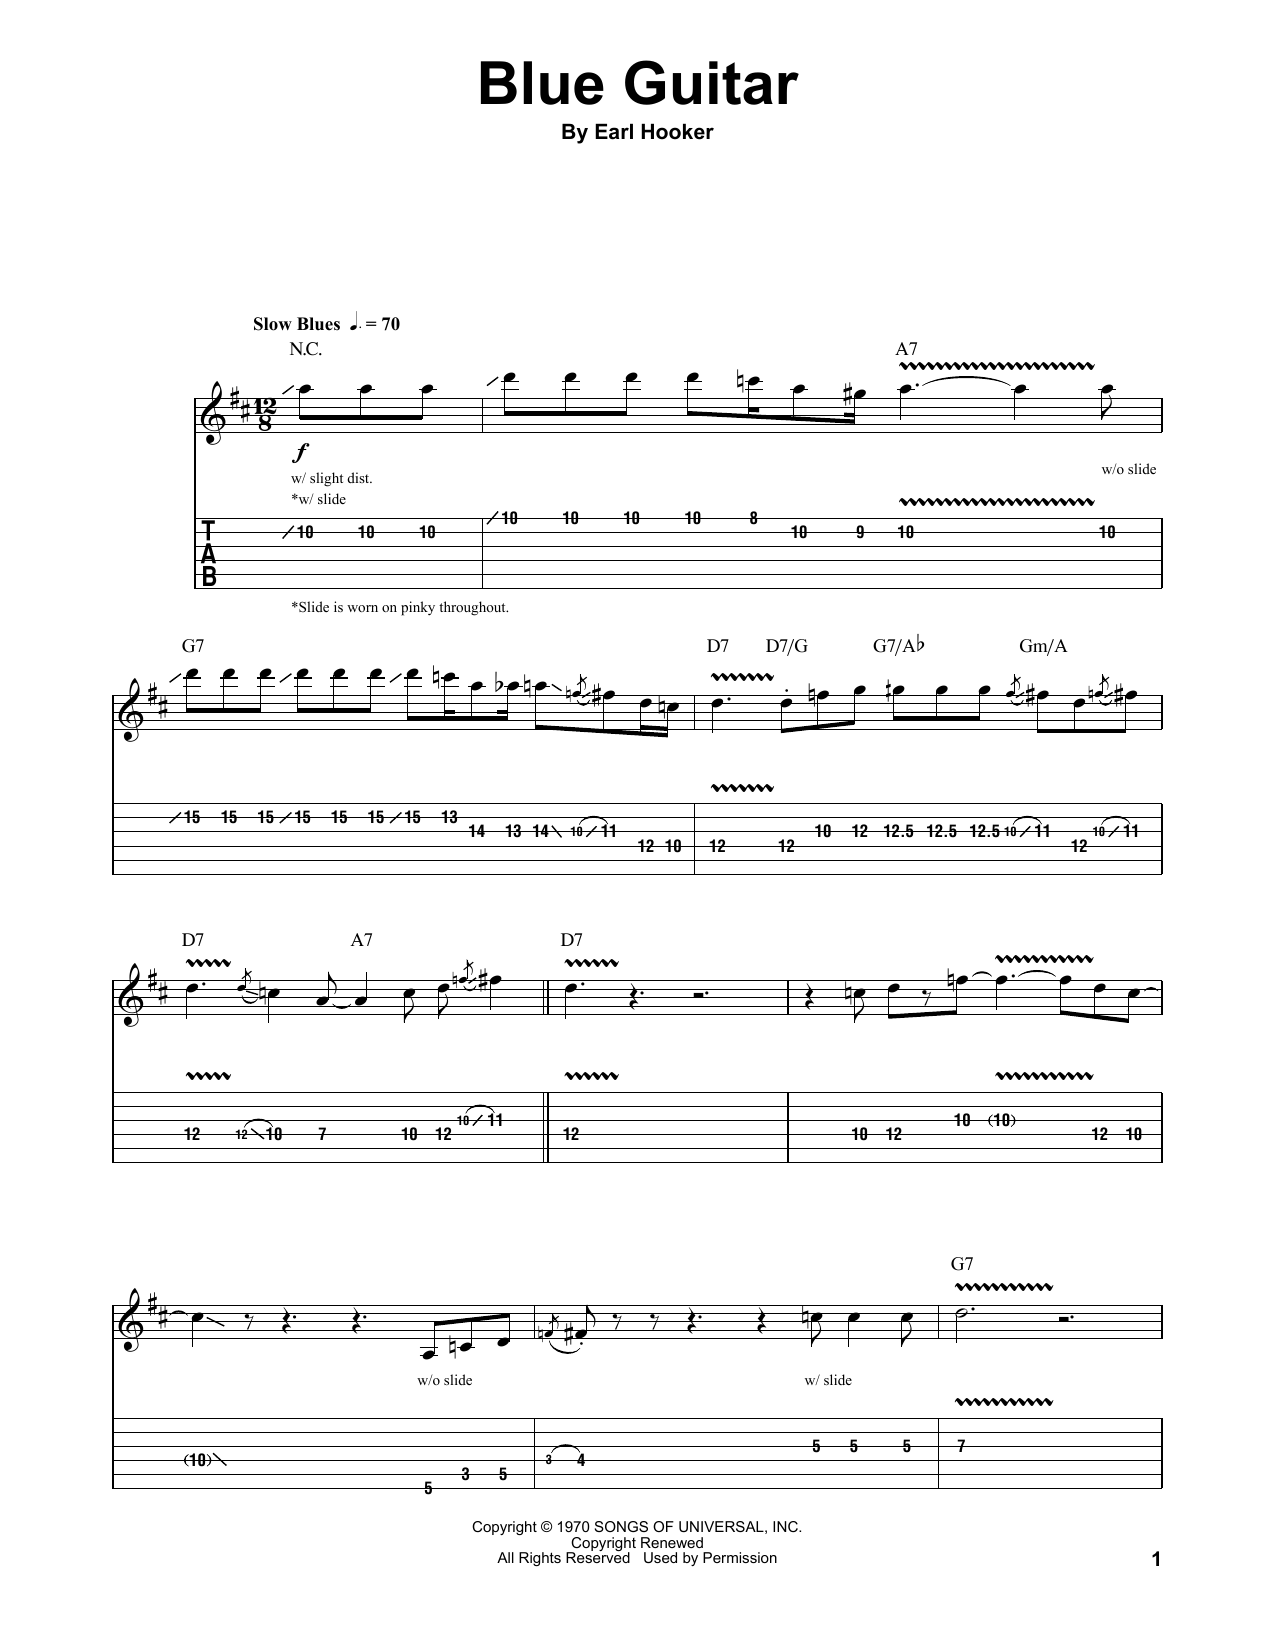 Earl Hooker Blue Guitar sheet music notes and chords. Download Printable PDF.